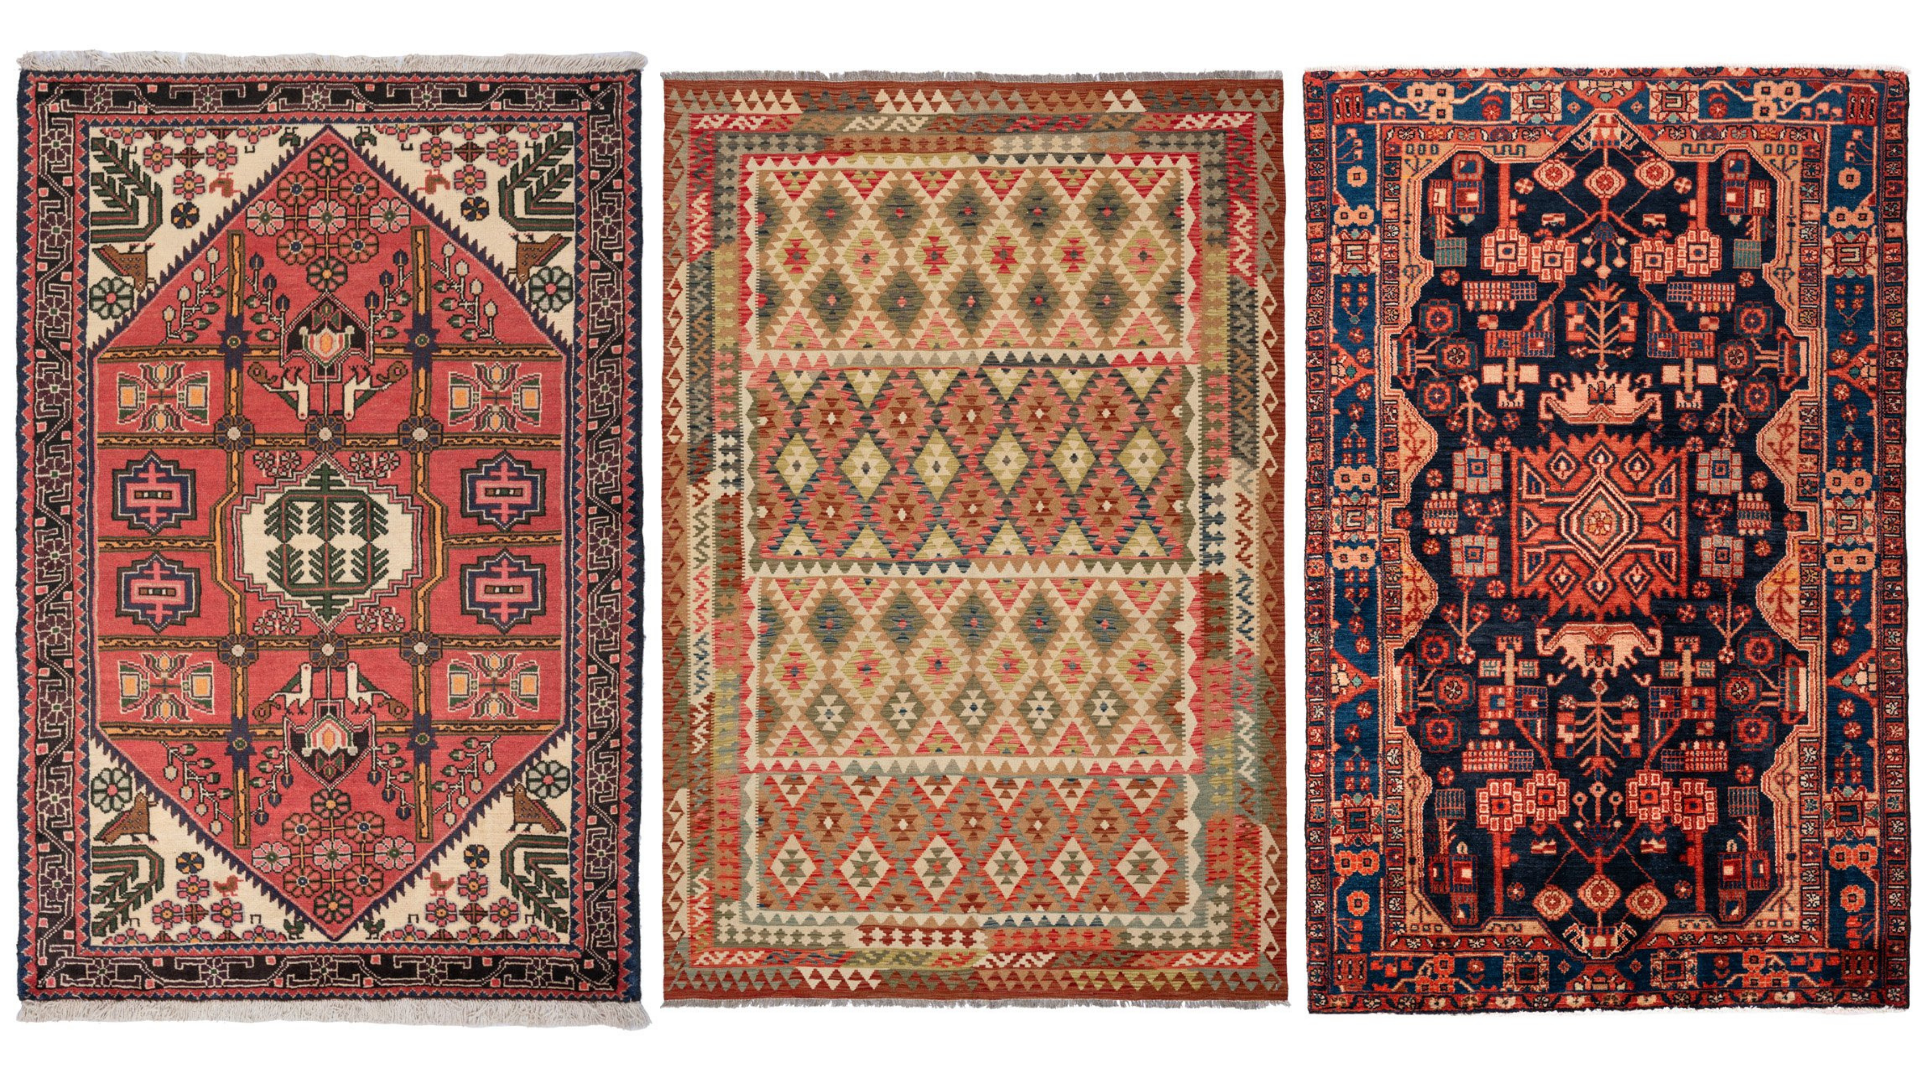 persian rugs, oriental rugs, london rugs, rug collections, summer decor, summer interior design, home decor, home accessories, interior design, design ideas